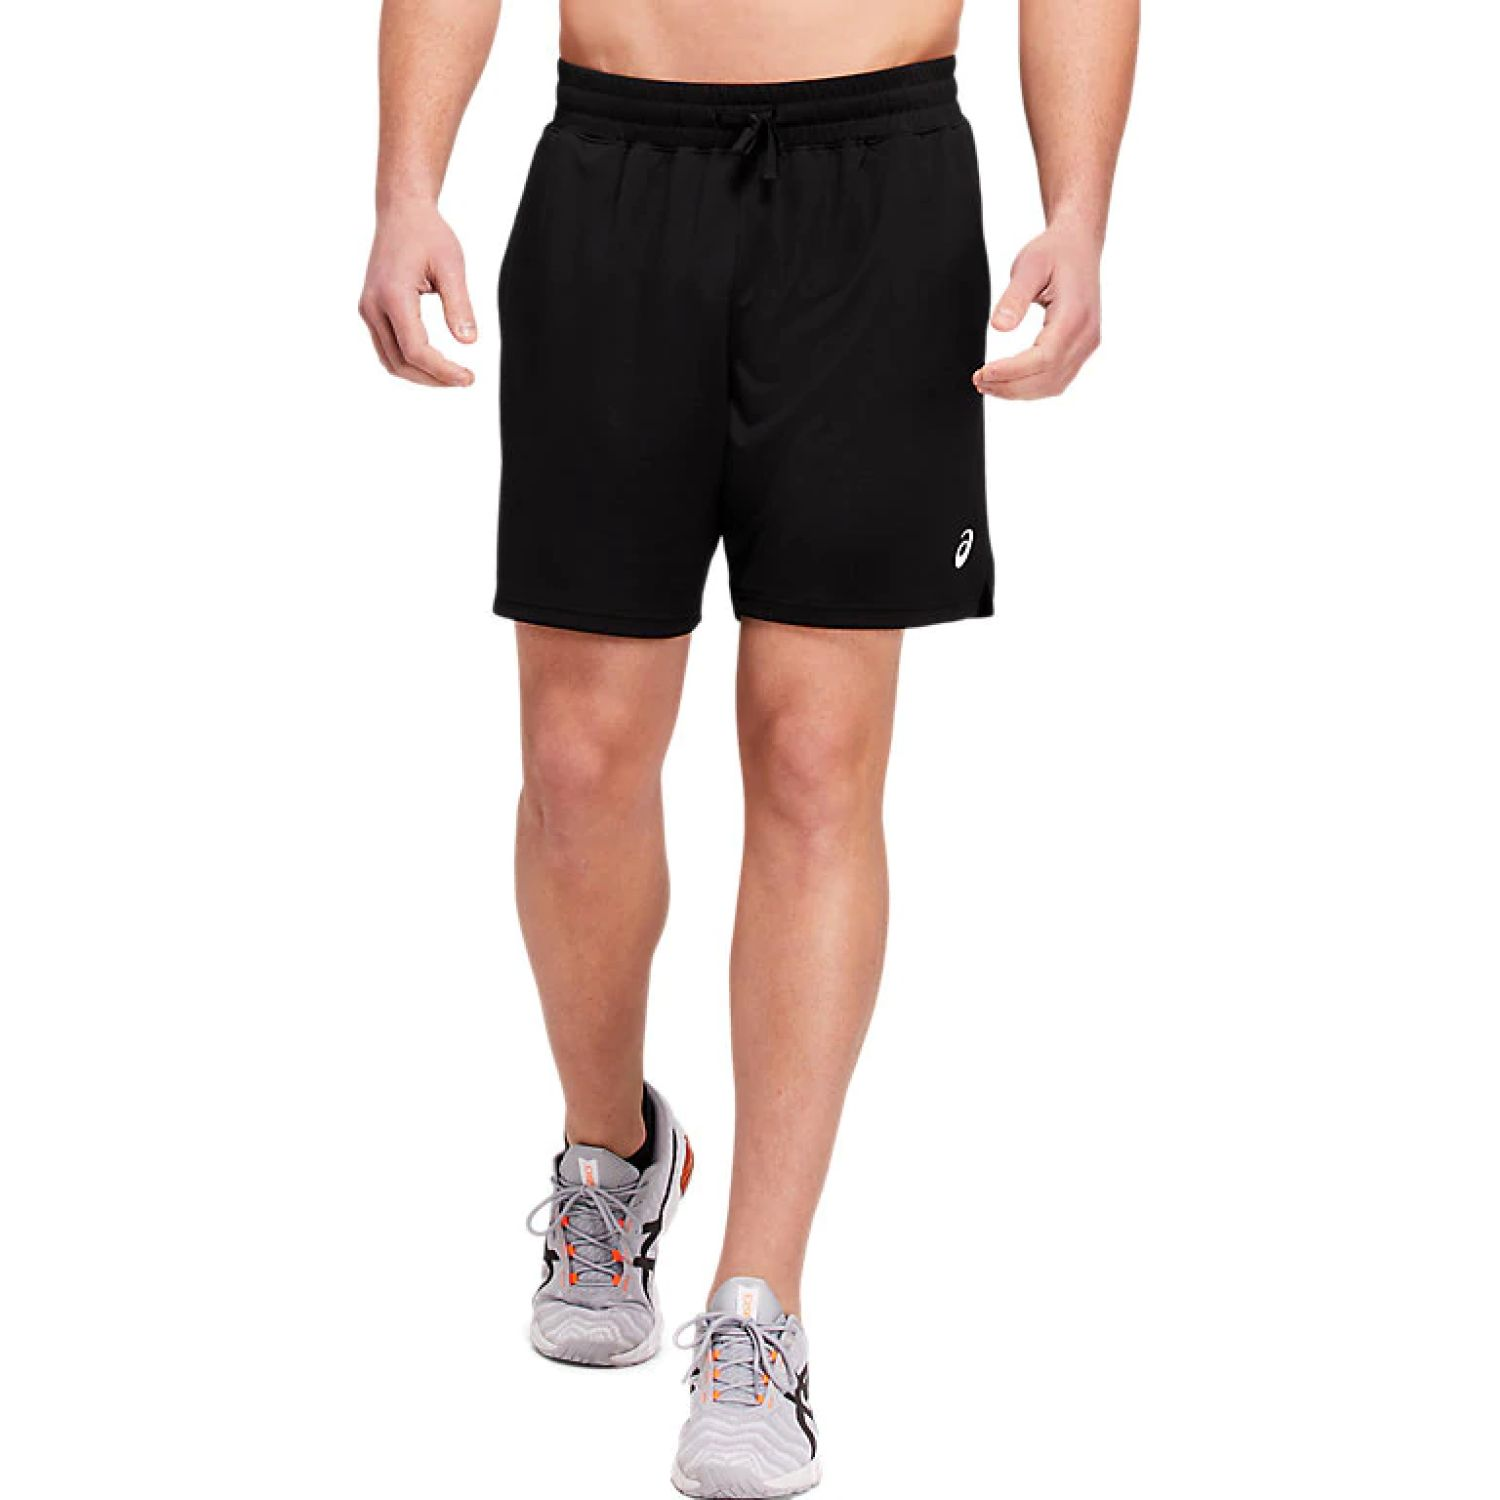 Asics M 7in Knit Train Sho Perf Black Negro Shorts deportivos